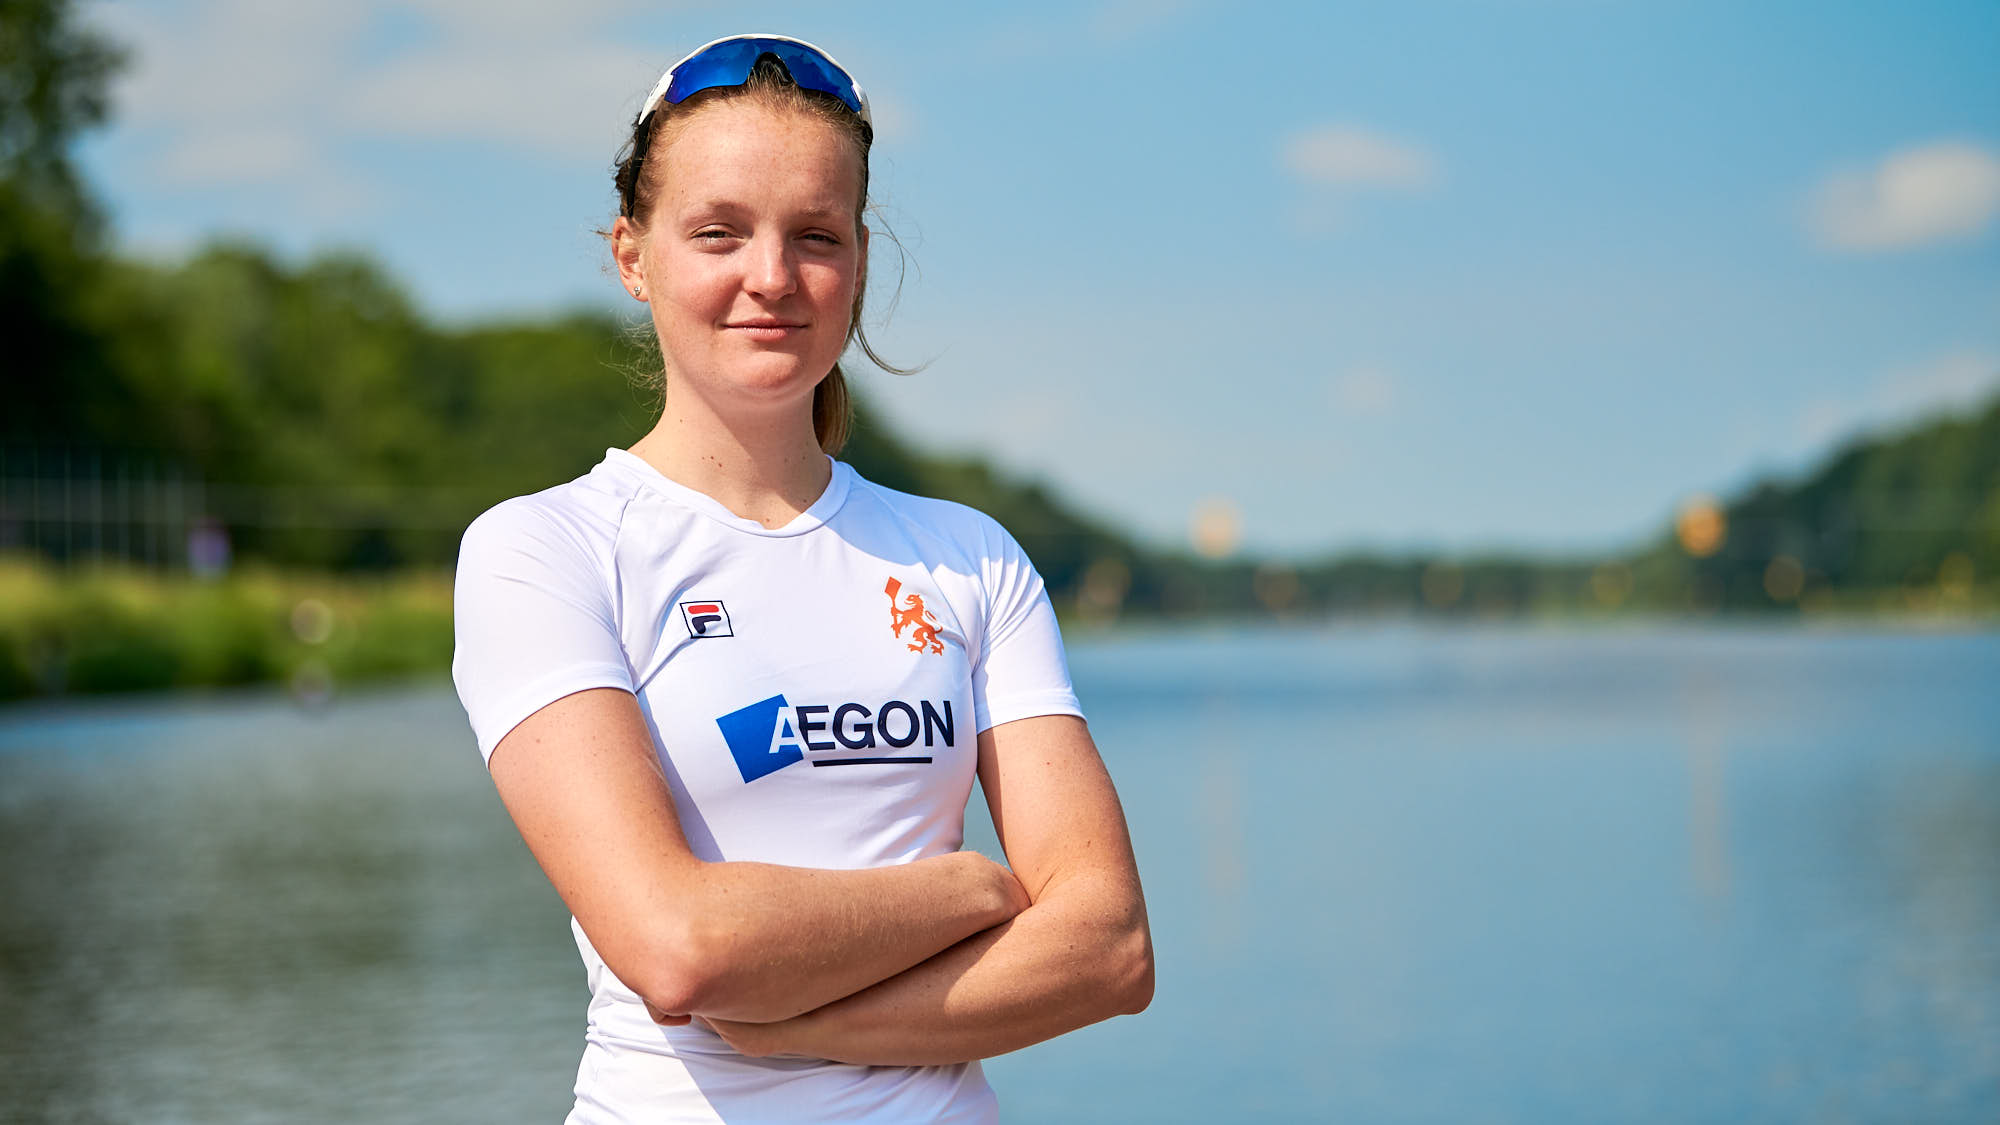 Portrait of top Dutch athlete Marieke Keijser